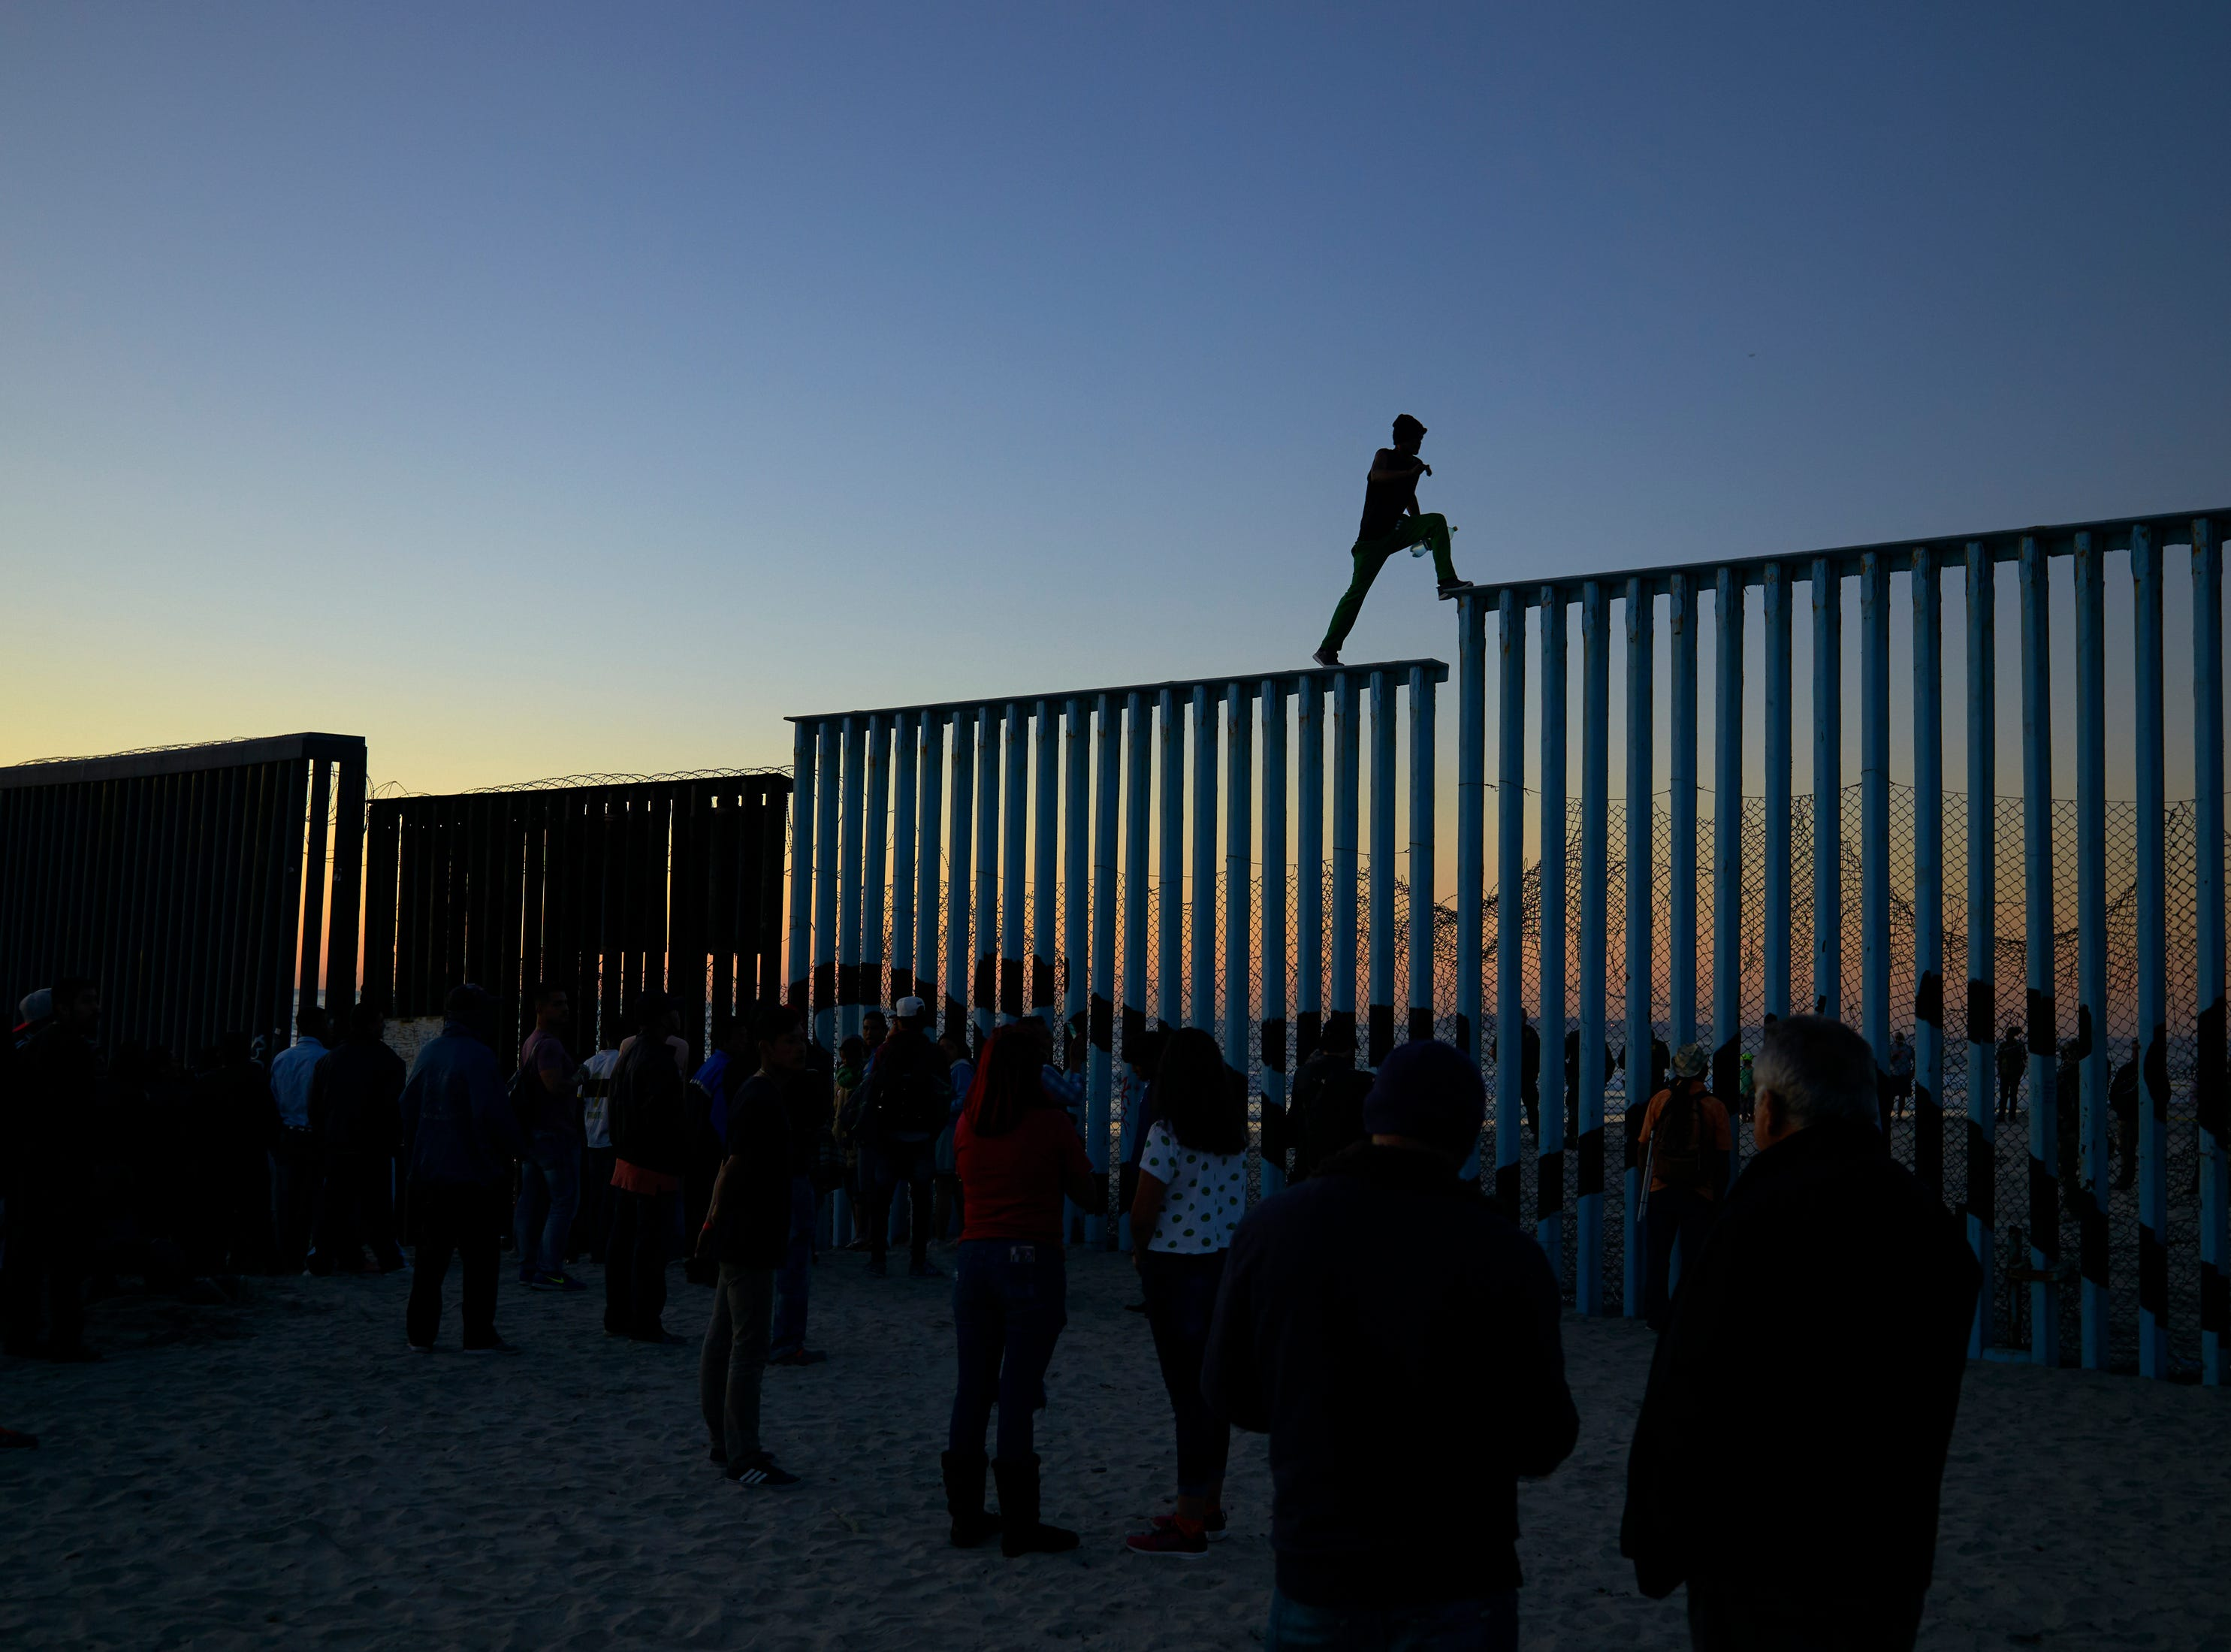 A man from Honduras walks along the top of the border structure separating Mexico and the United States on Nov. 14, 2018, in Tijuana, Mexico.